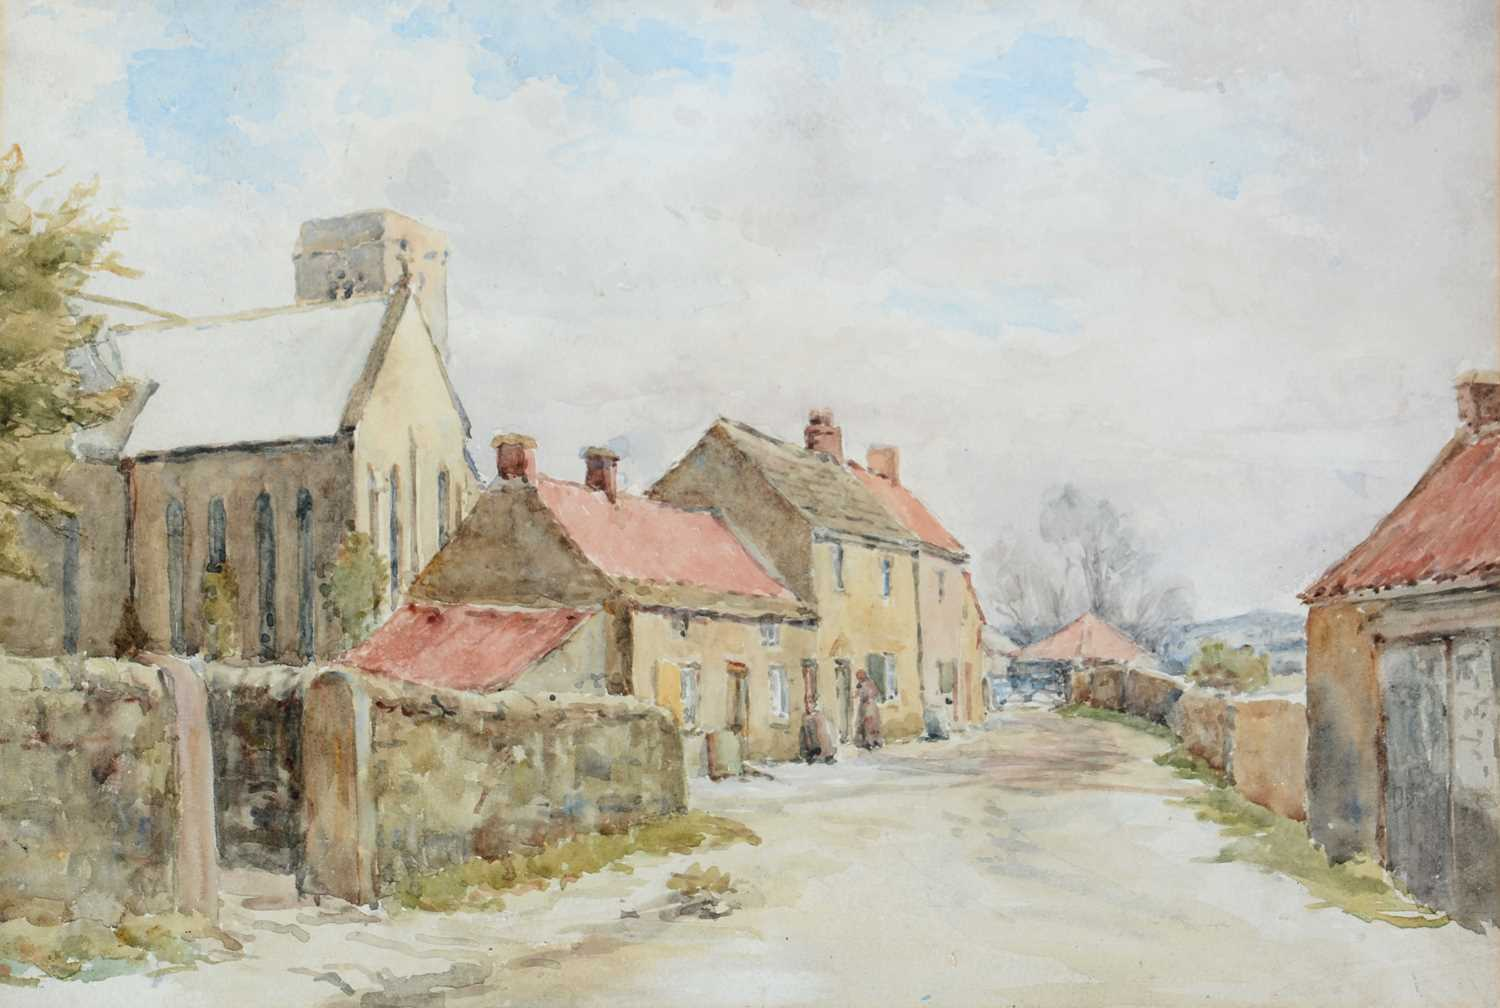 Northern School - watercolour. - Image 3 of 3